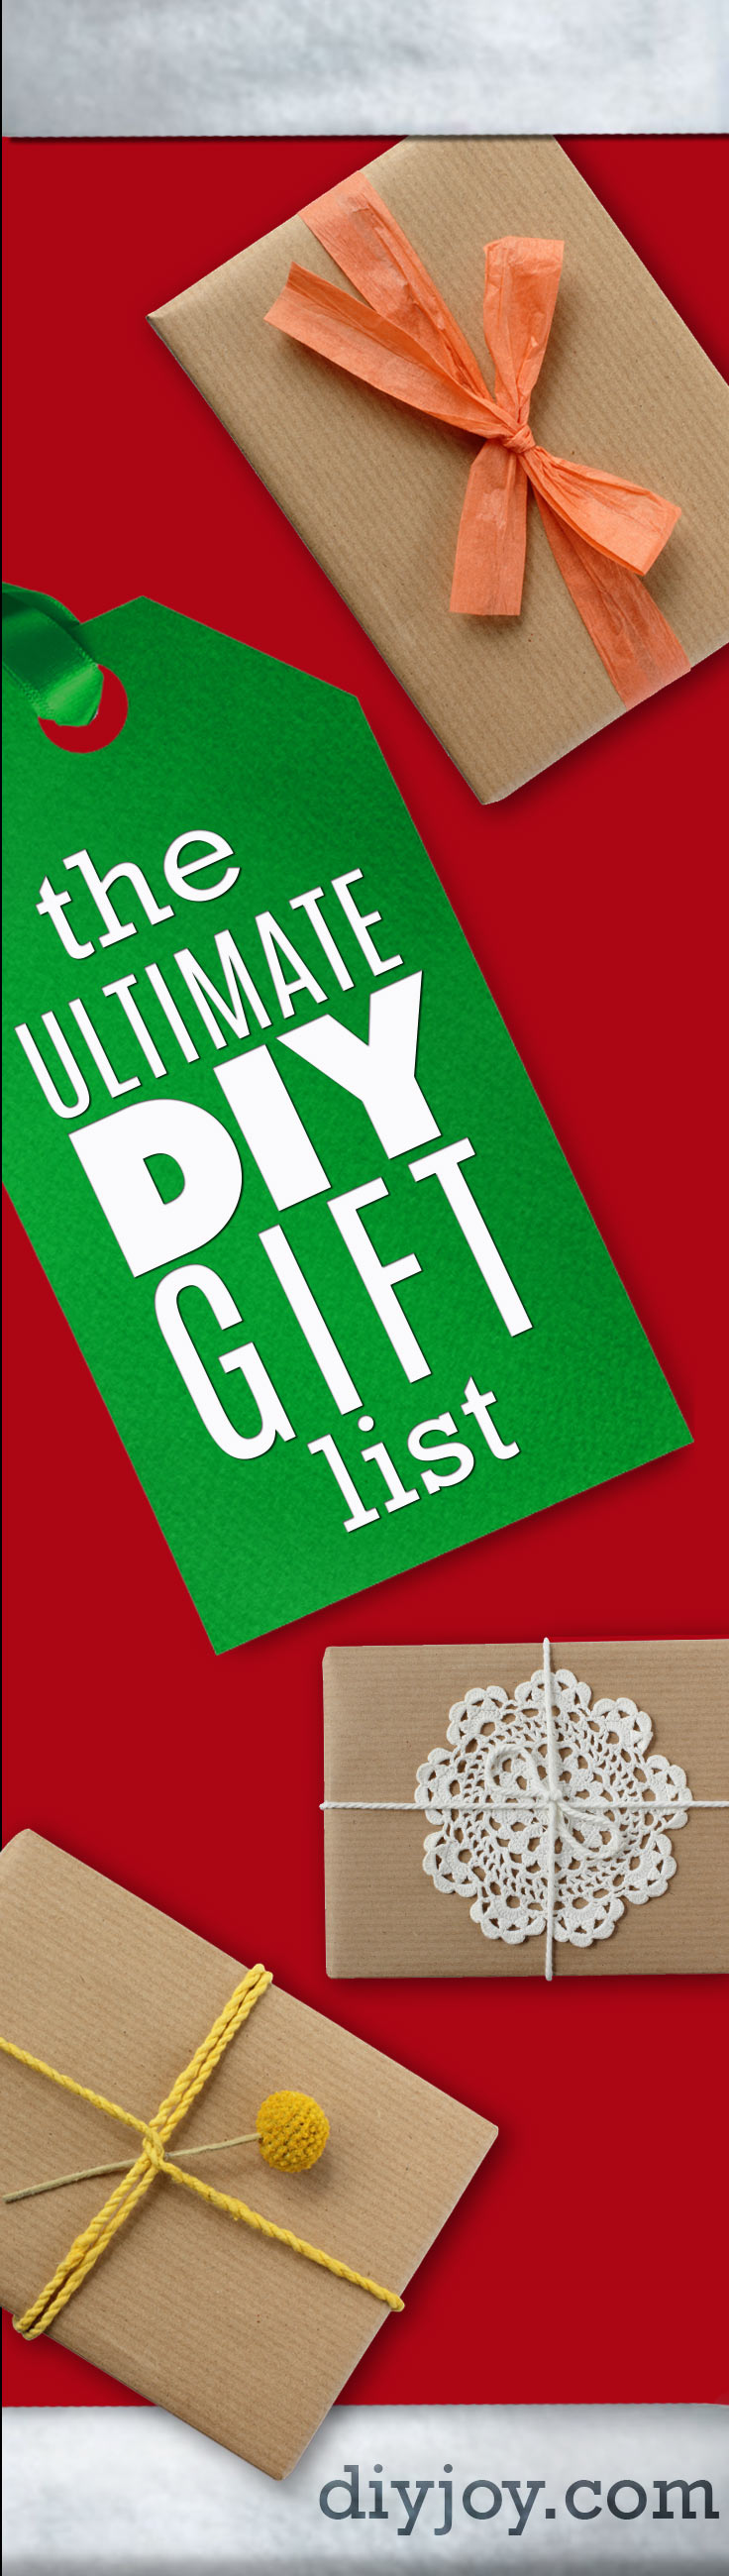 The Ultimate Diy Christmas Gifts List Homemade Birthday Gift Ideas For Best Friend Girl Present